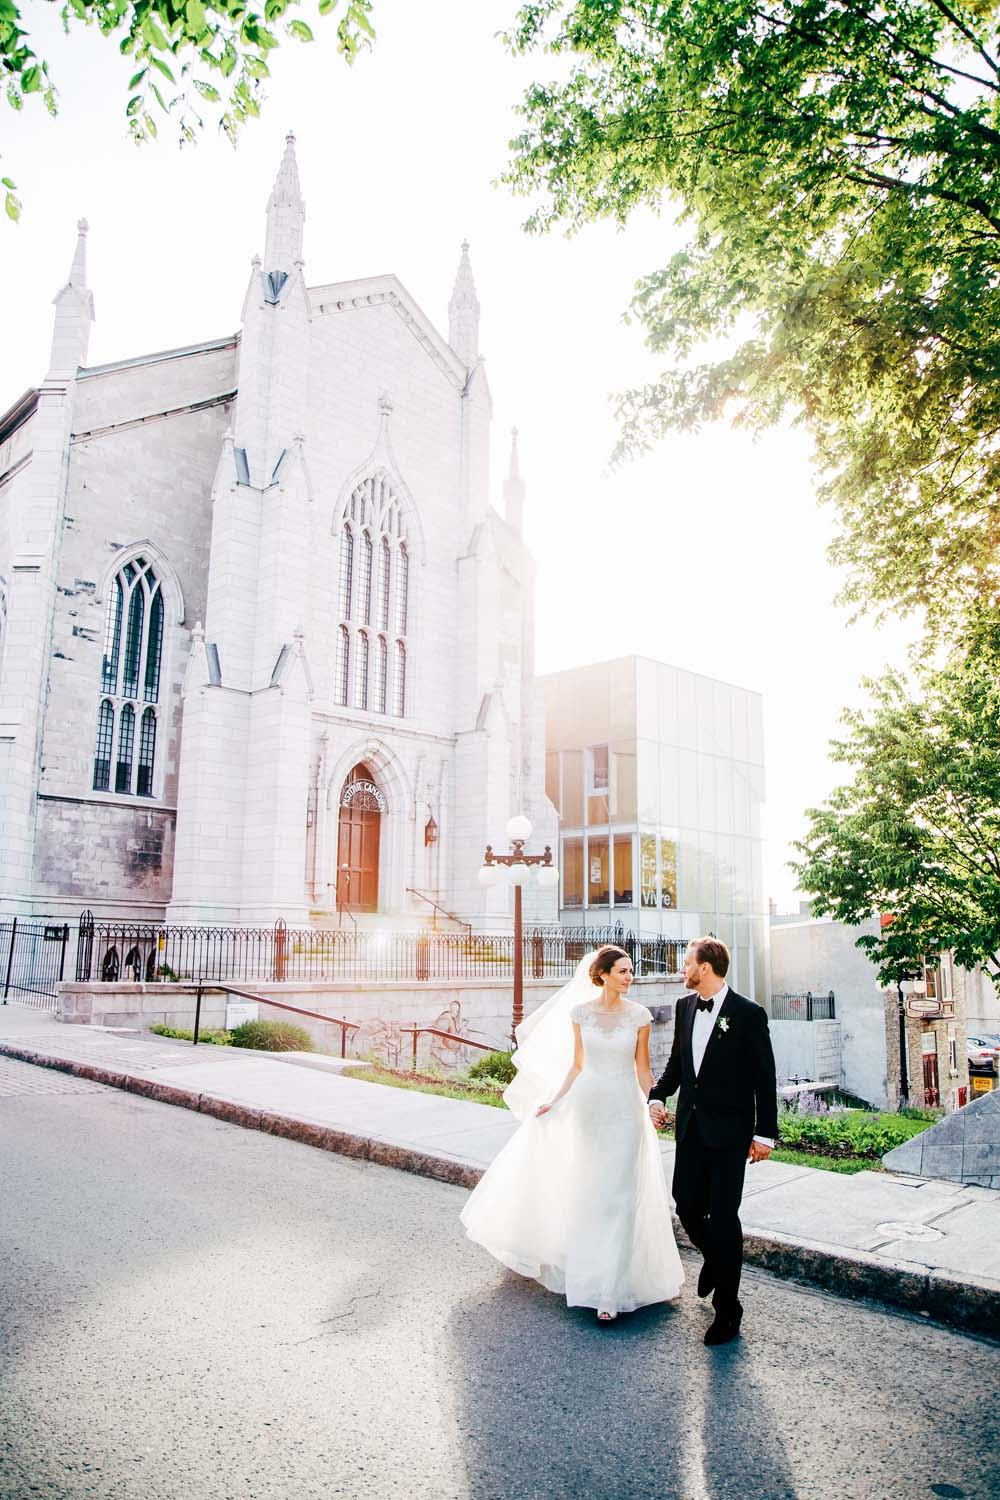 An Elegant White and Gold Wedding in Quebec City - Bride and Groom